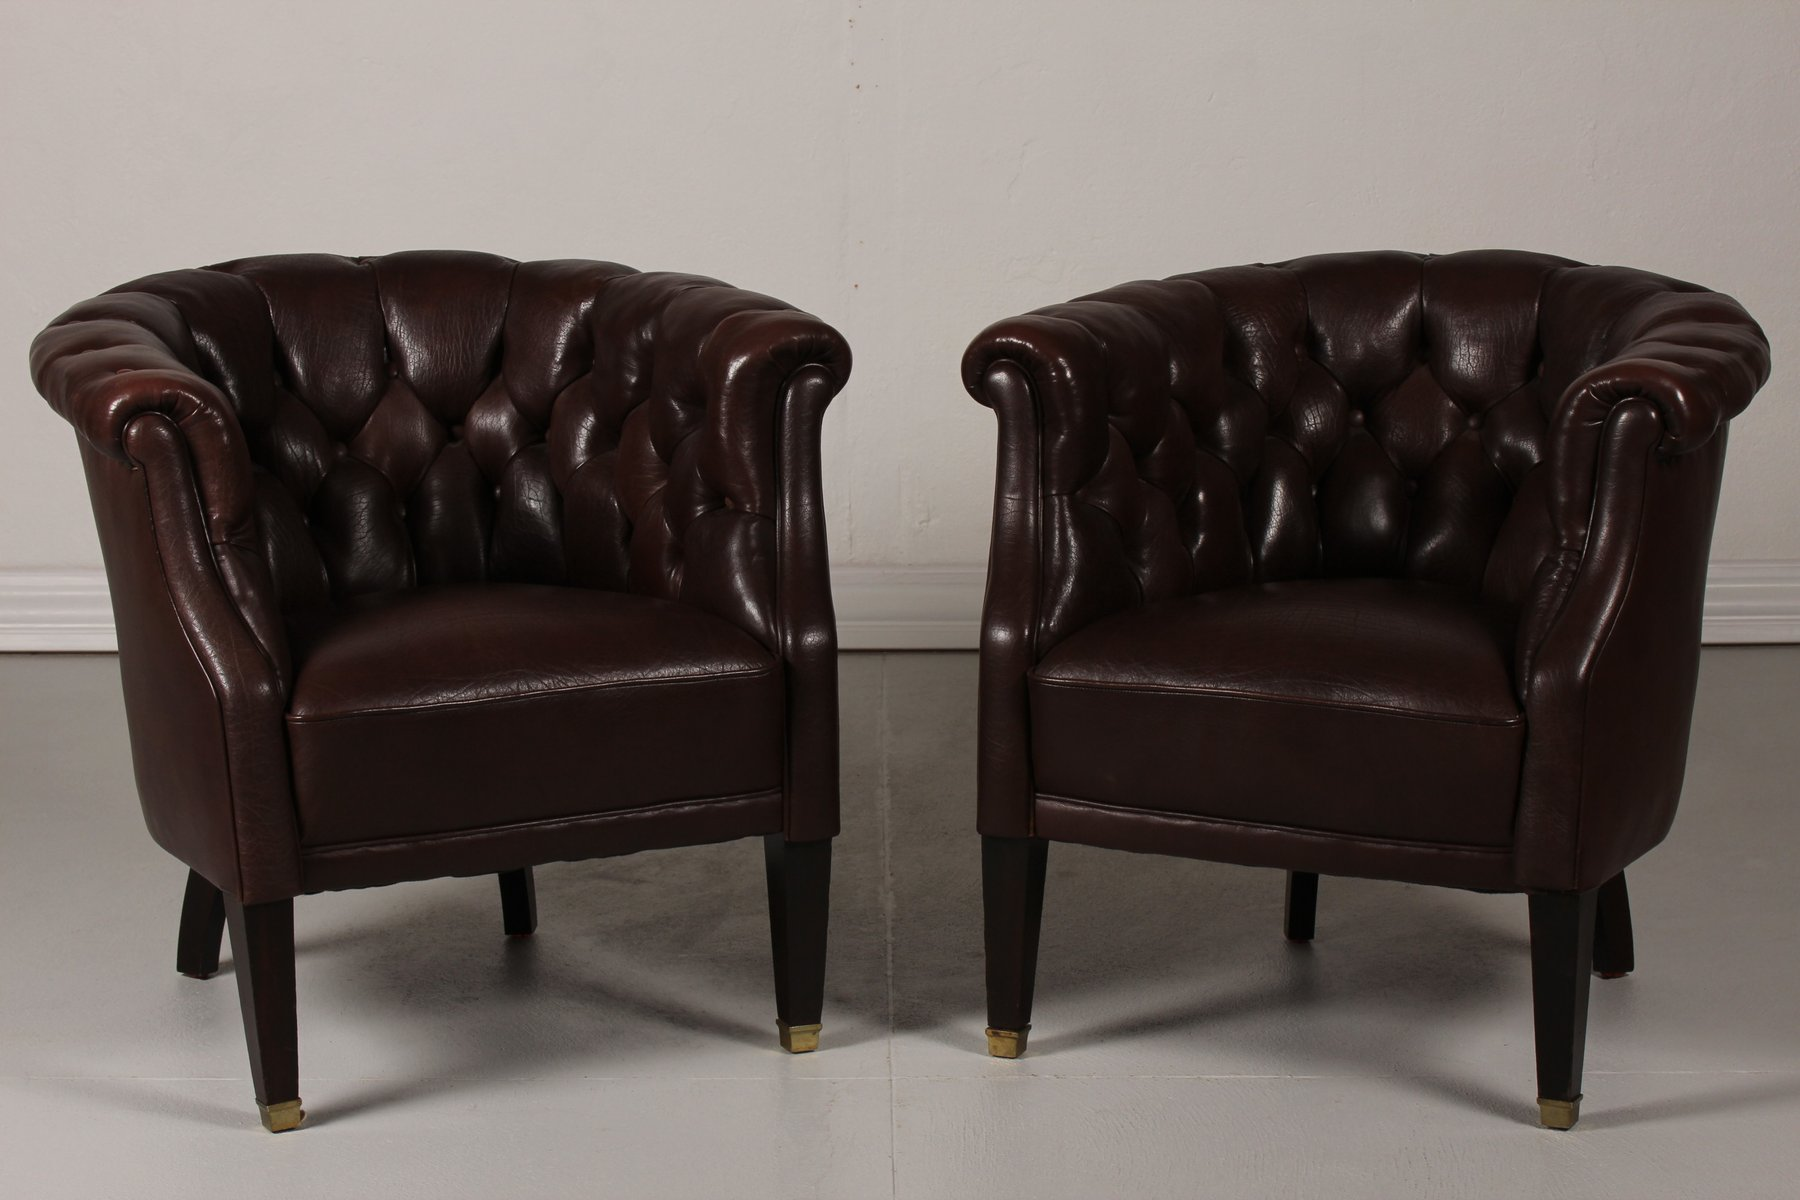 fauteuils chesterfield marron fonc en cuir 1920s set de 2 en vente sur pamono. Black Bedroom Furniture Sets. Home Design Ideas